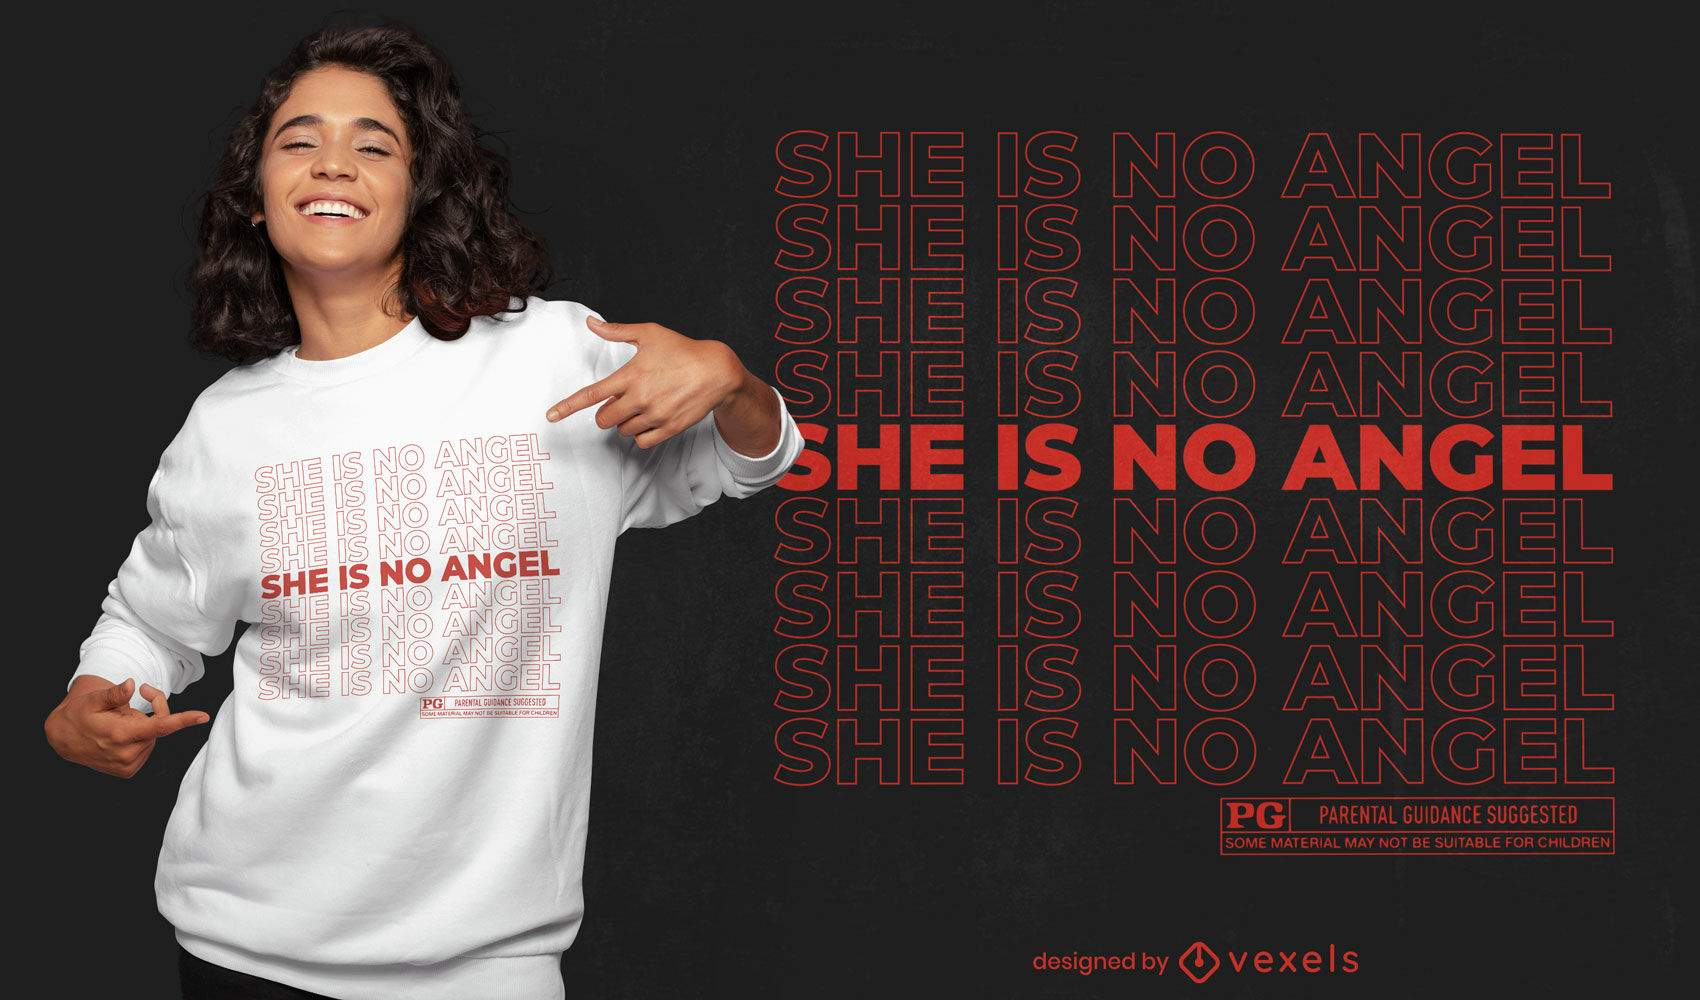 She is no angel quote t-shirt design